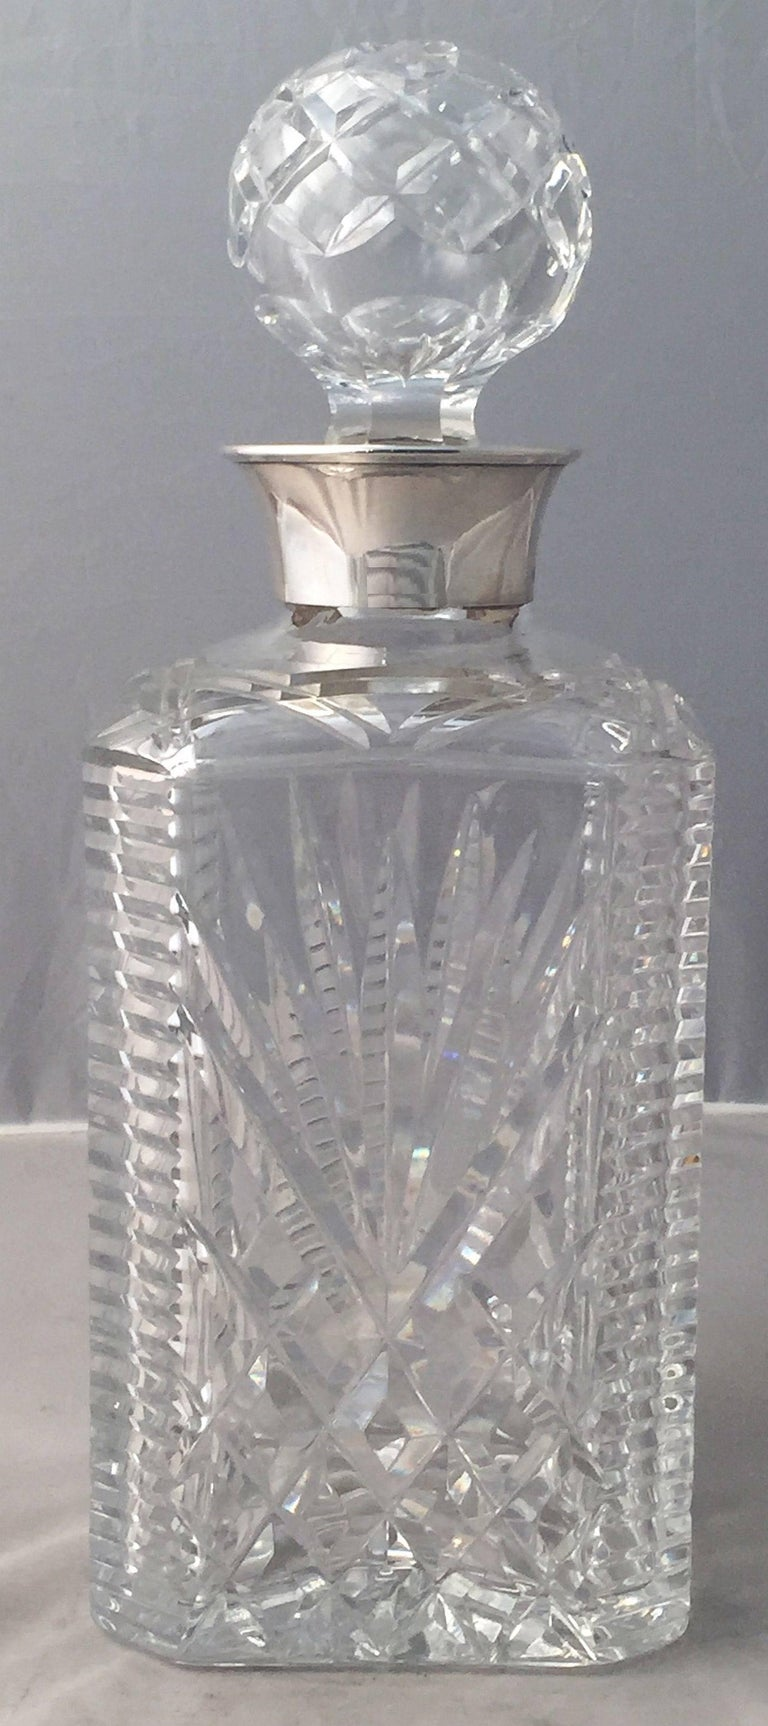 A handsome English four-sided spirits or whiskey decanter of faceted cut crystal with sterling silver collar and removable round stopper.